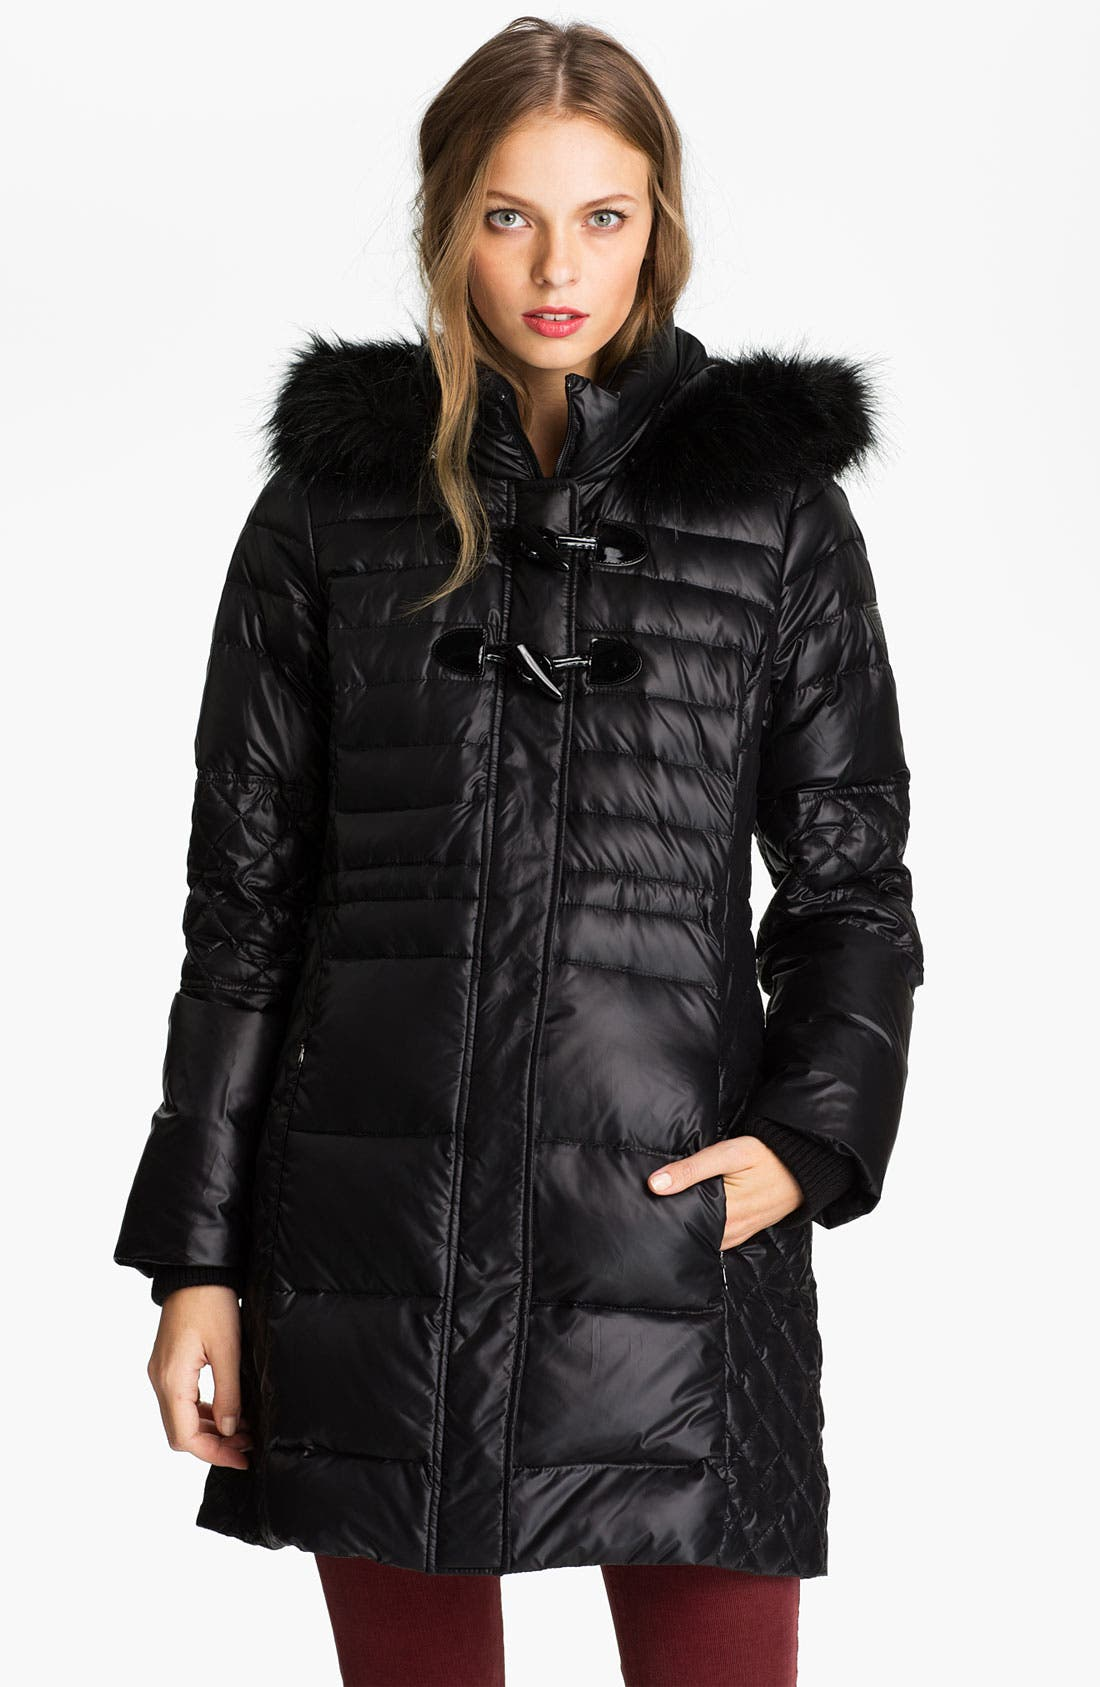 Main Image - GUESS Quilted Coat with Faux Fur Trim (Online Exclusive)